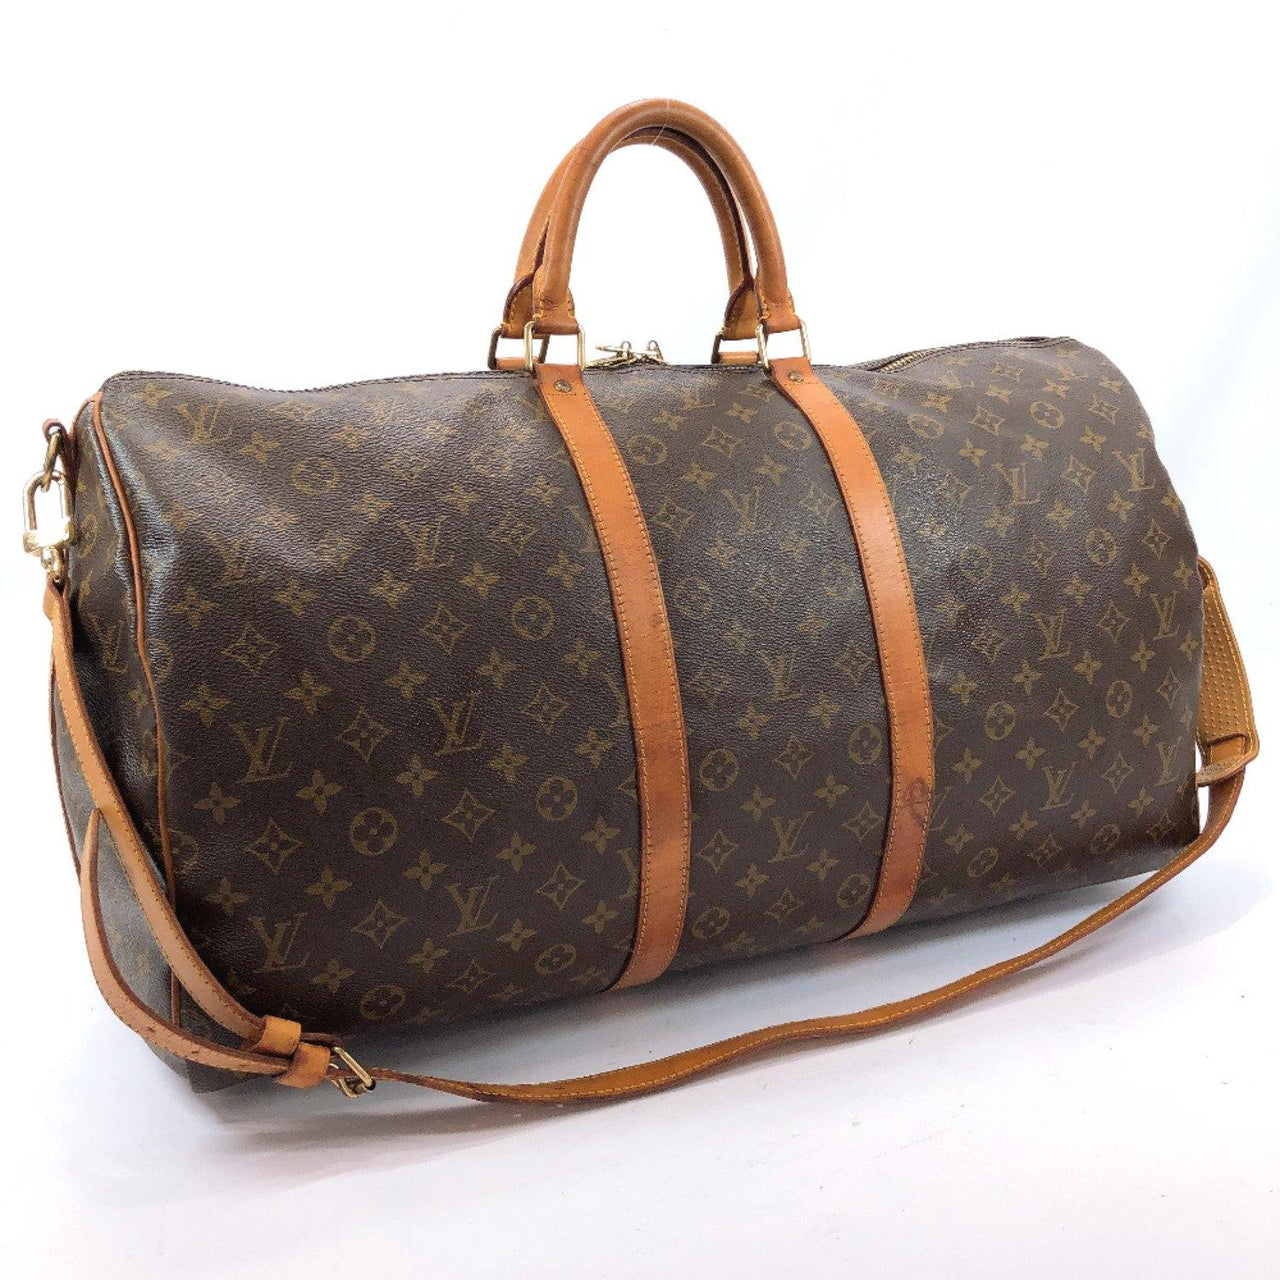 LOUIS VUITTON Boston bag M41414 Keepall Bandouliere 55 Monogram canvas Brown unisex Used - JP-BRANDS.com